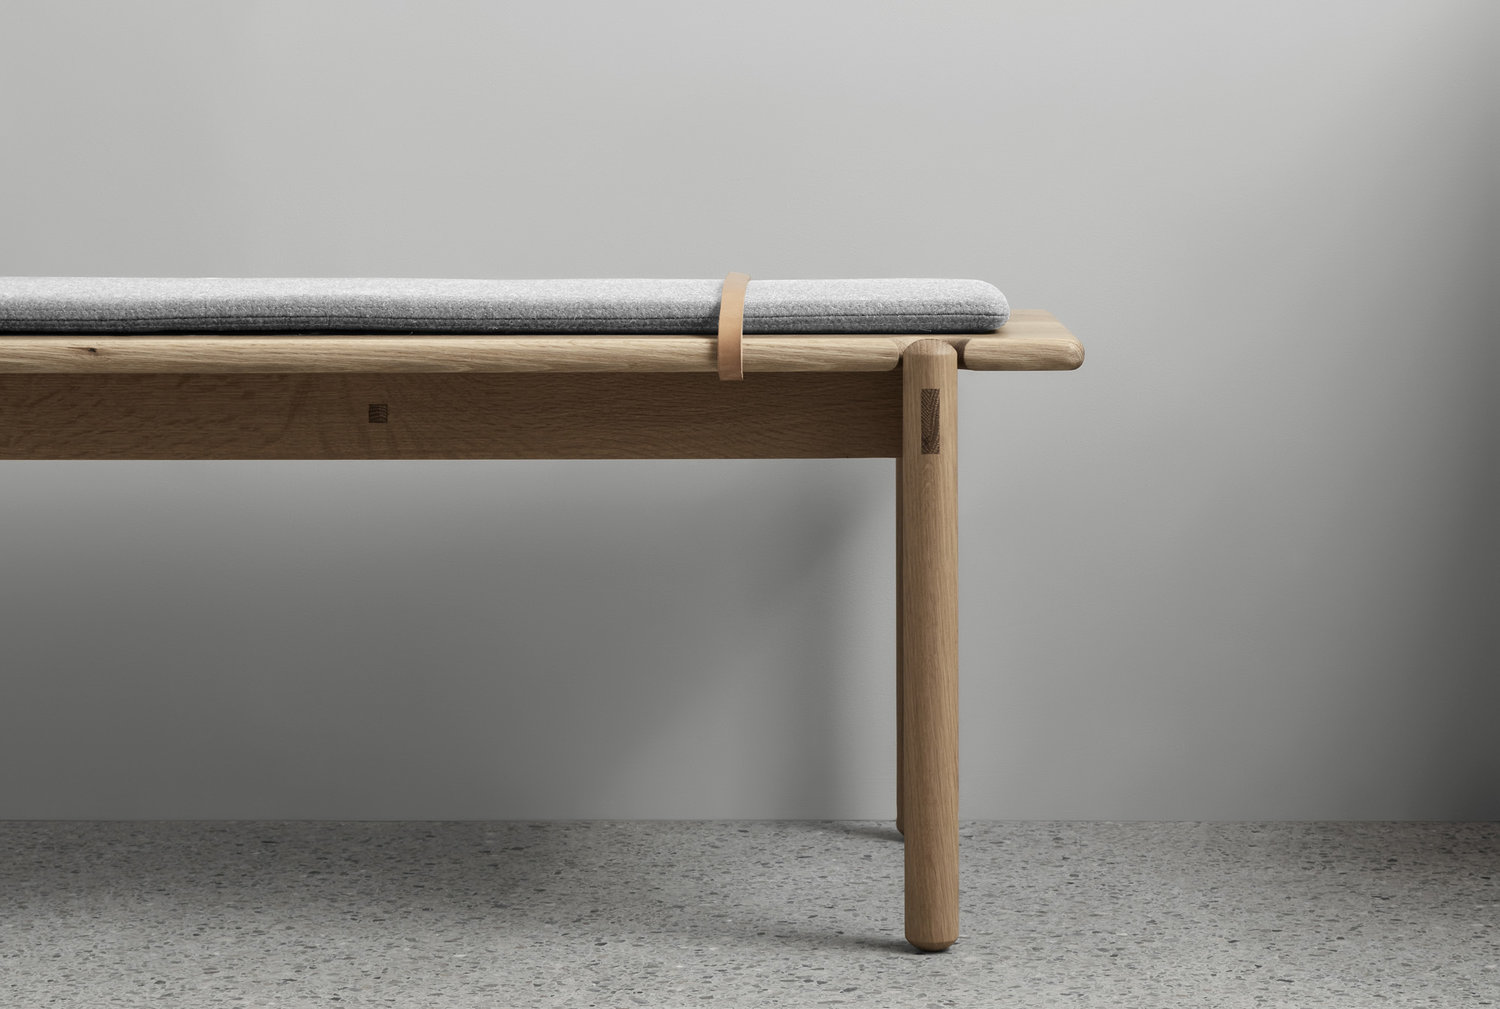 front details of the AOB-S bench seat by Made by Morgen - timber detailing